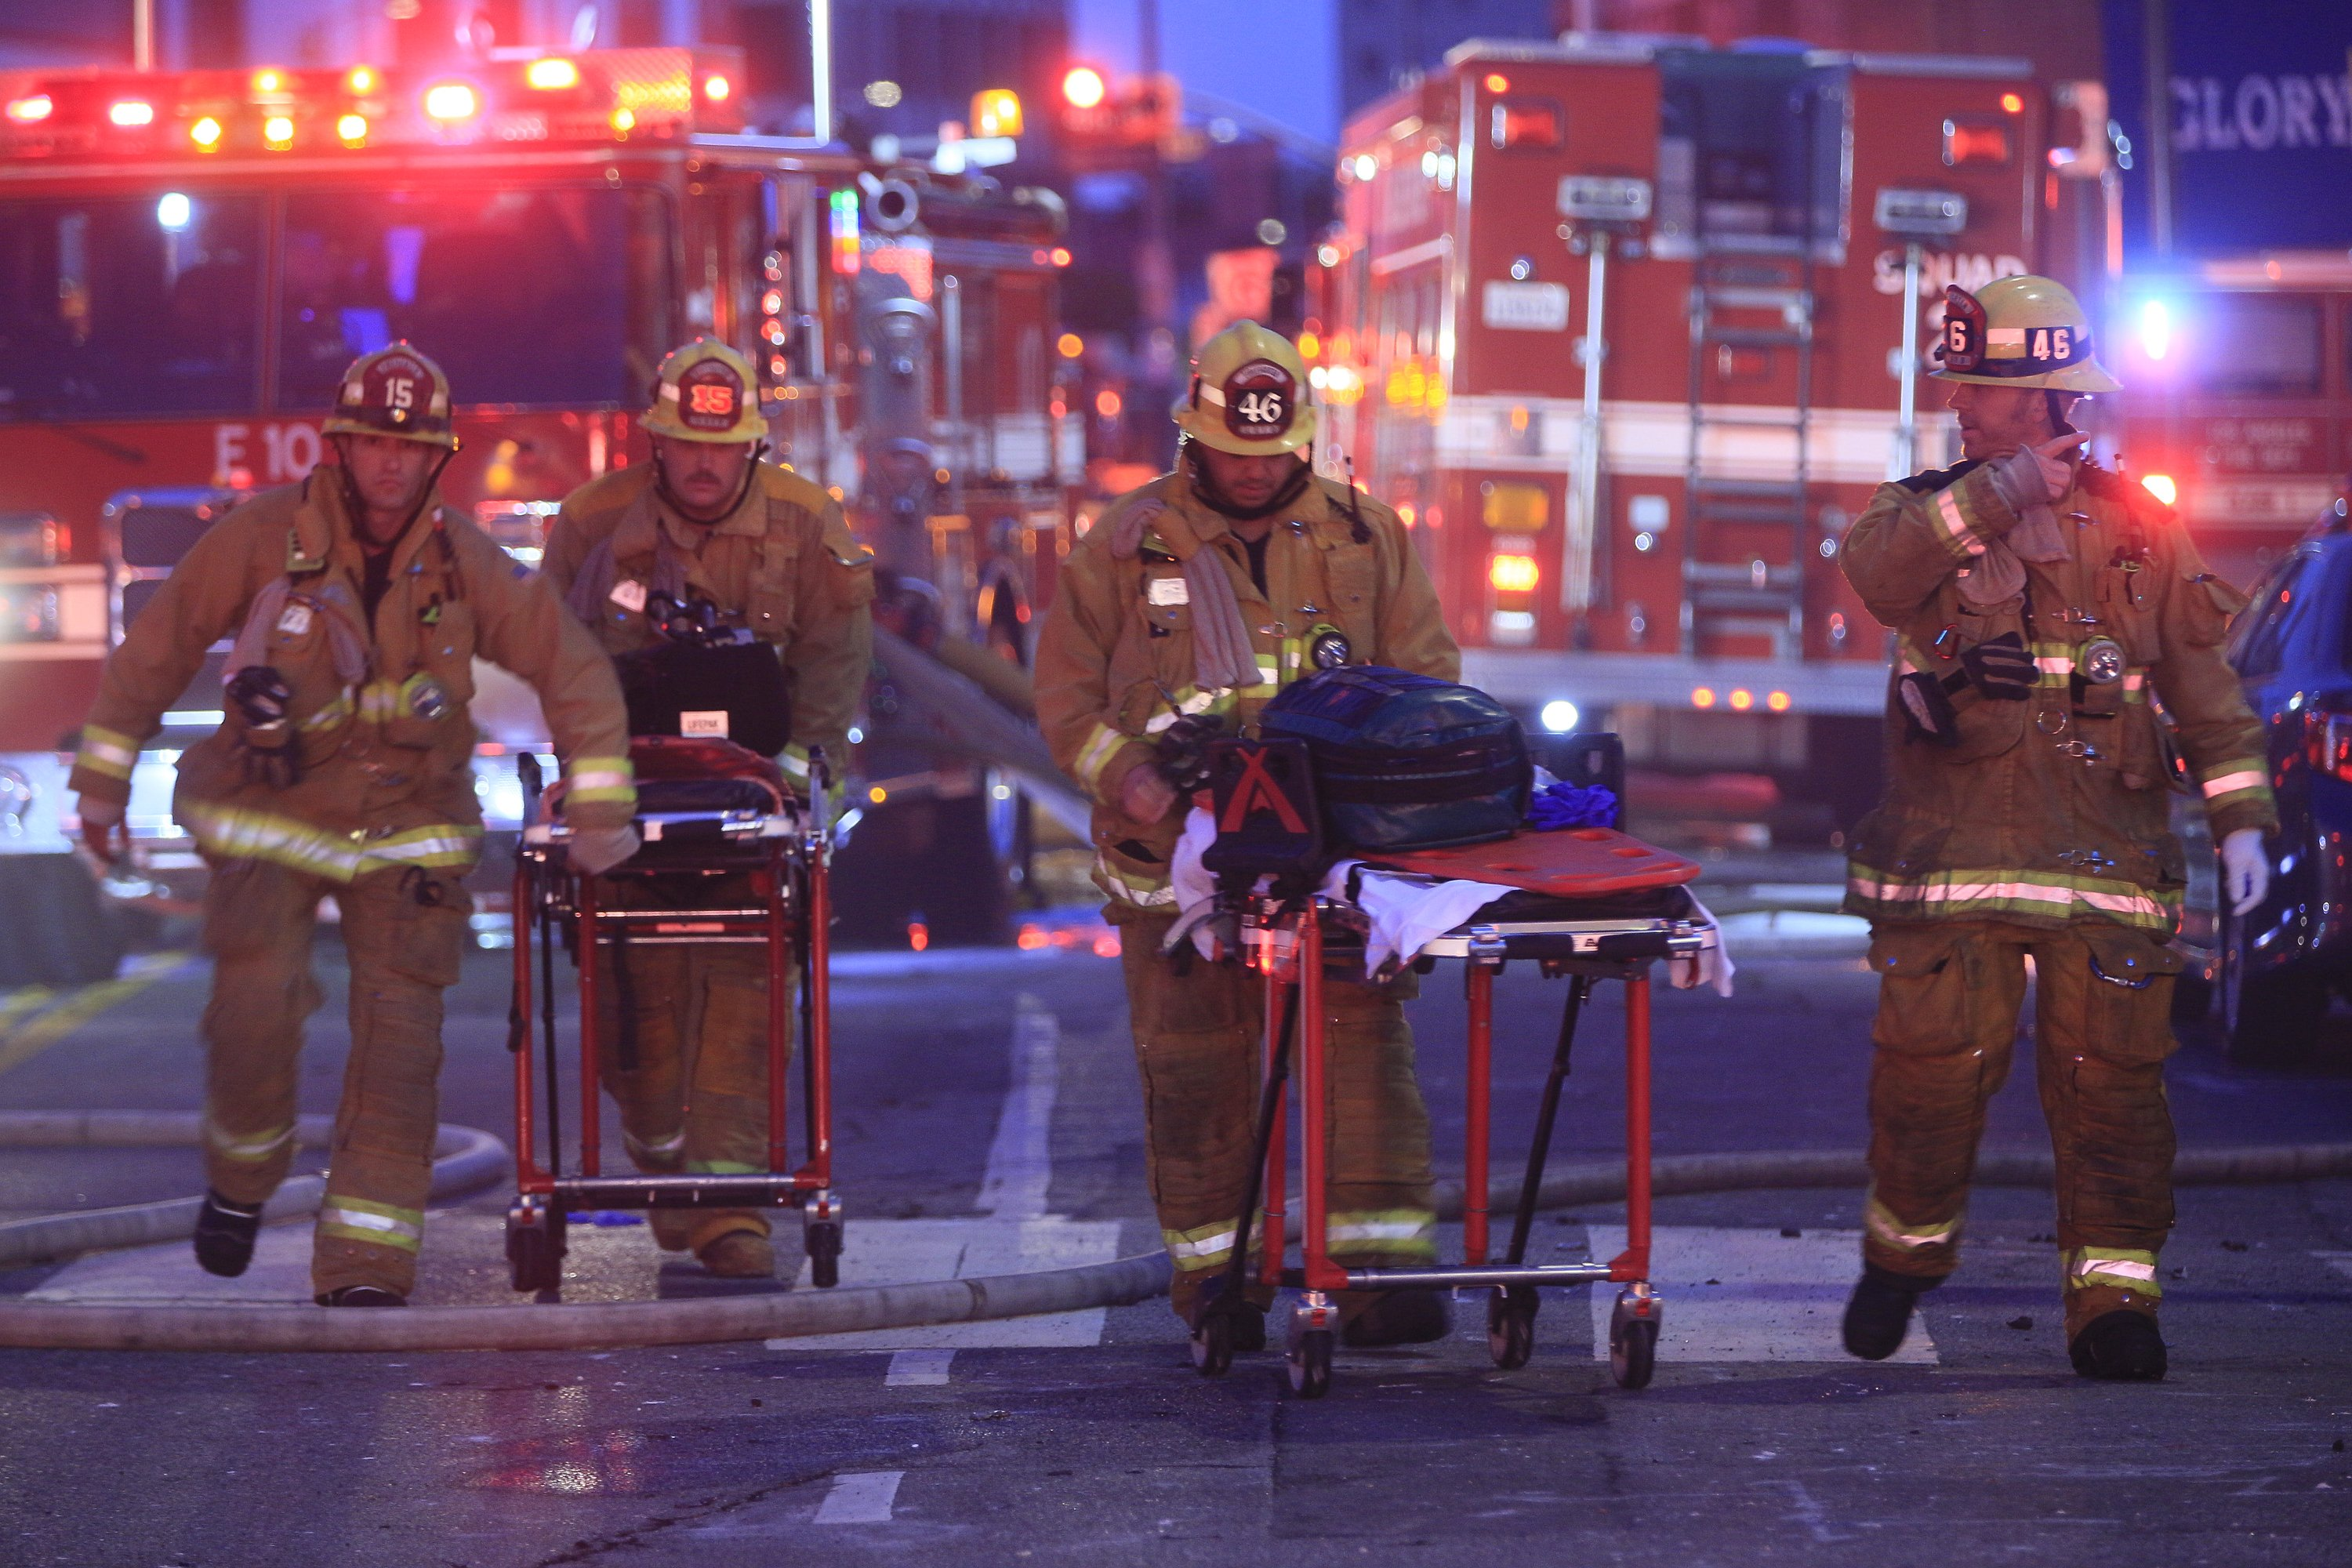 11 Los Angeles firefighters hurt while running from blast